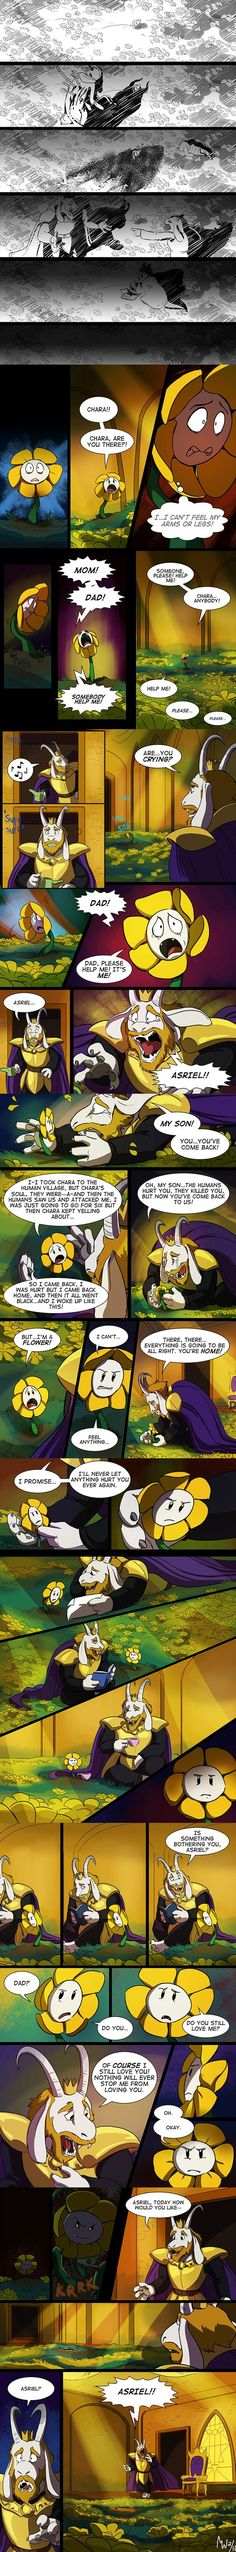 Undertale - Flowey Origins pt 1 Source: http://lynxgriffin.tumblr.com/post/139248485408/to-be-continued-i-guess-i-just-cant-stay-away: